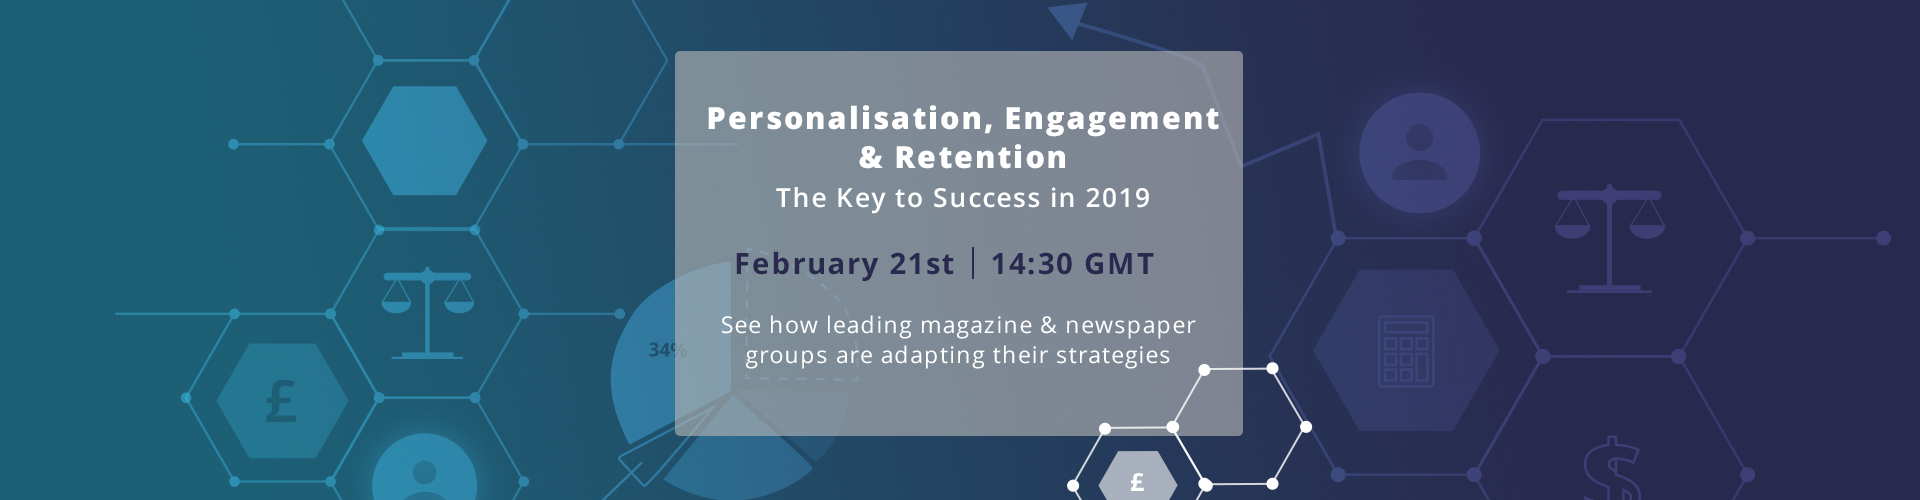 Header image of Webinar: Personalisation, Engagement & Retention – The Key to Success in 2019